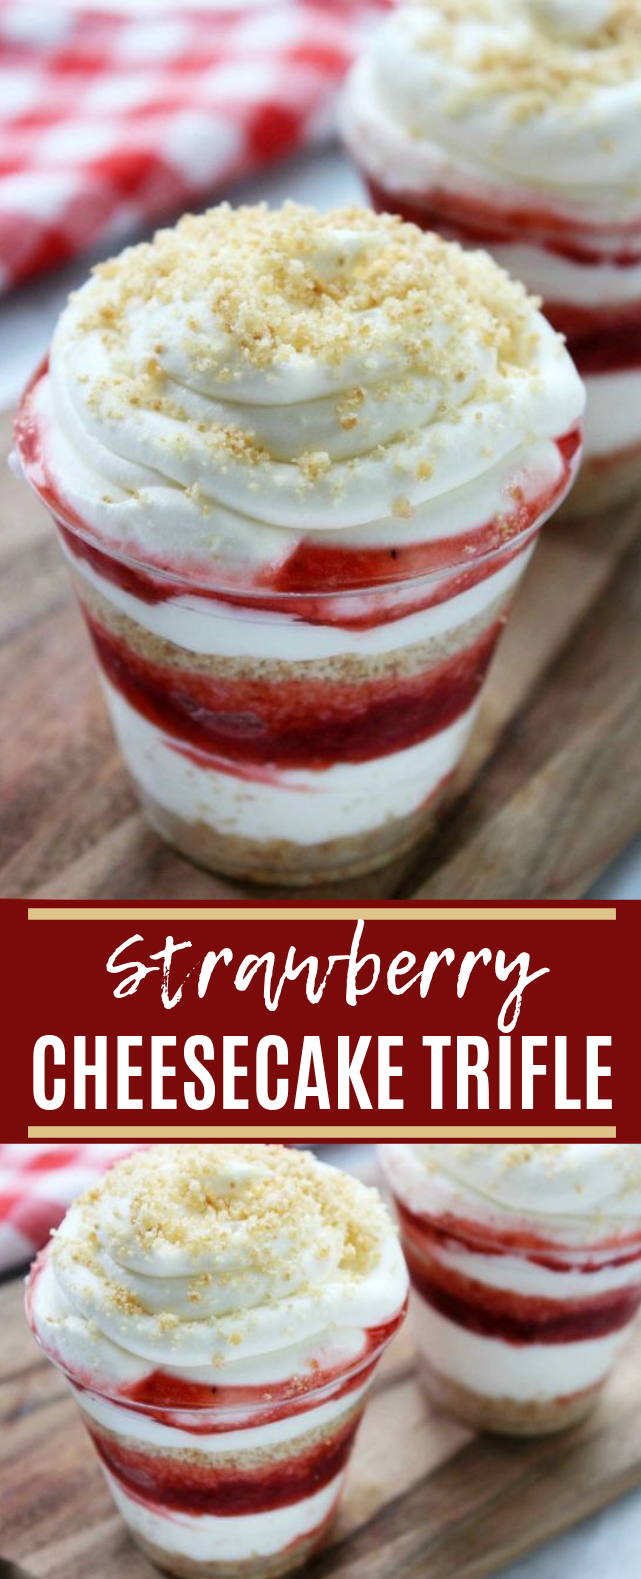 Strawberry Cheesecake Trifle #dessert #summer